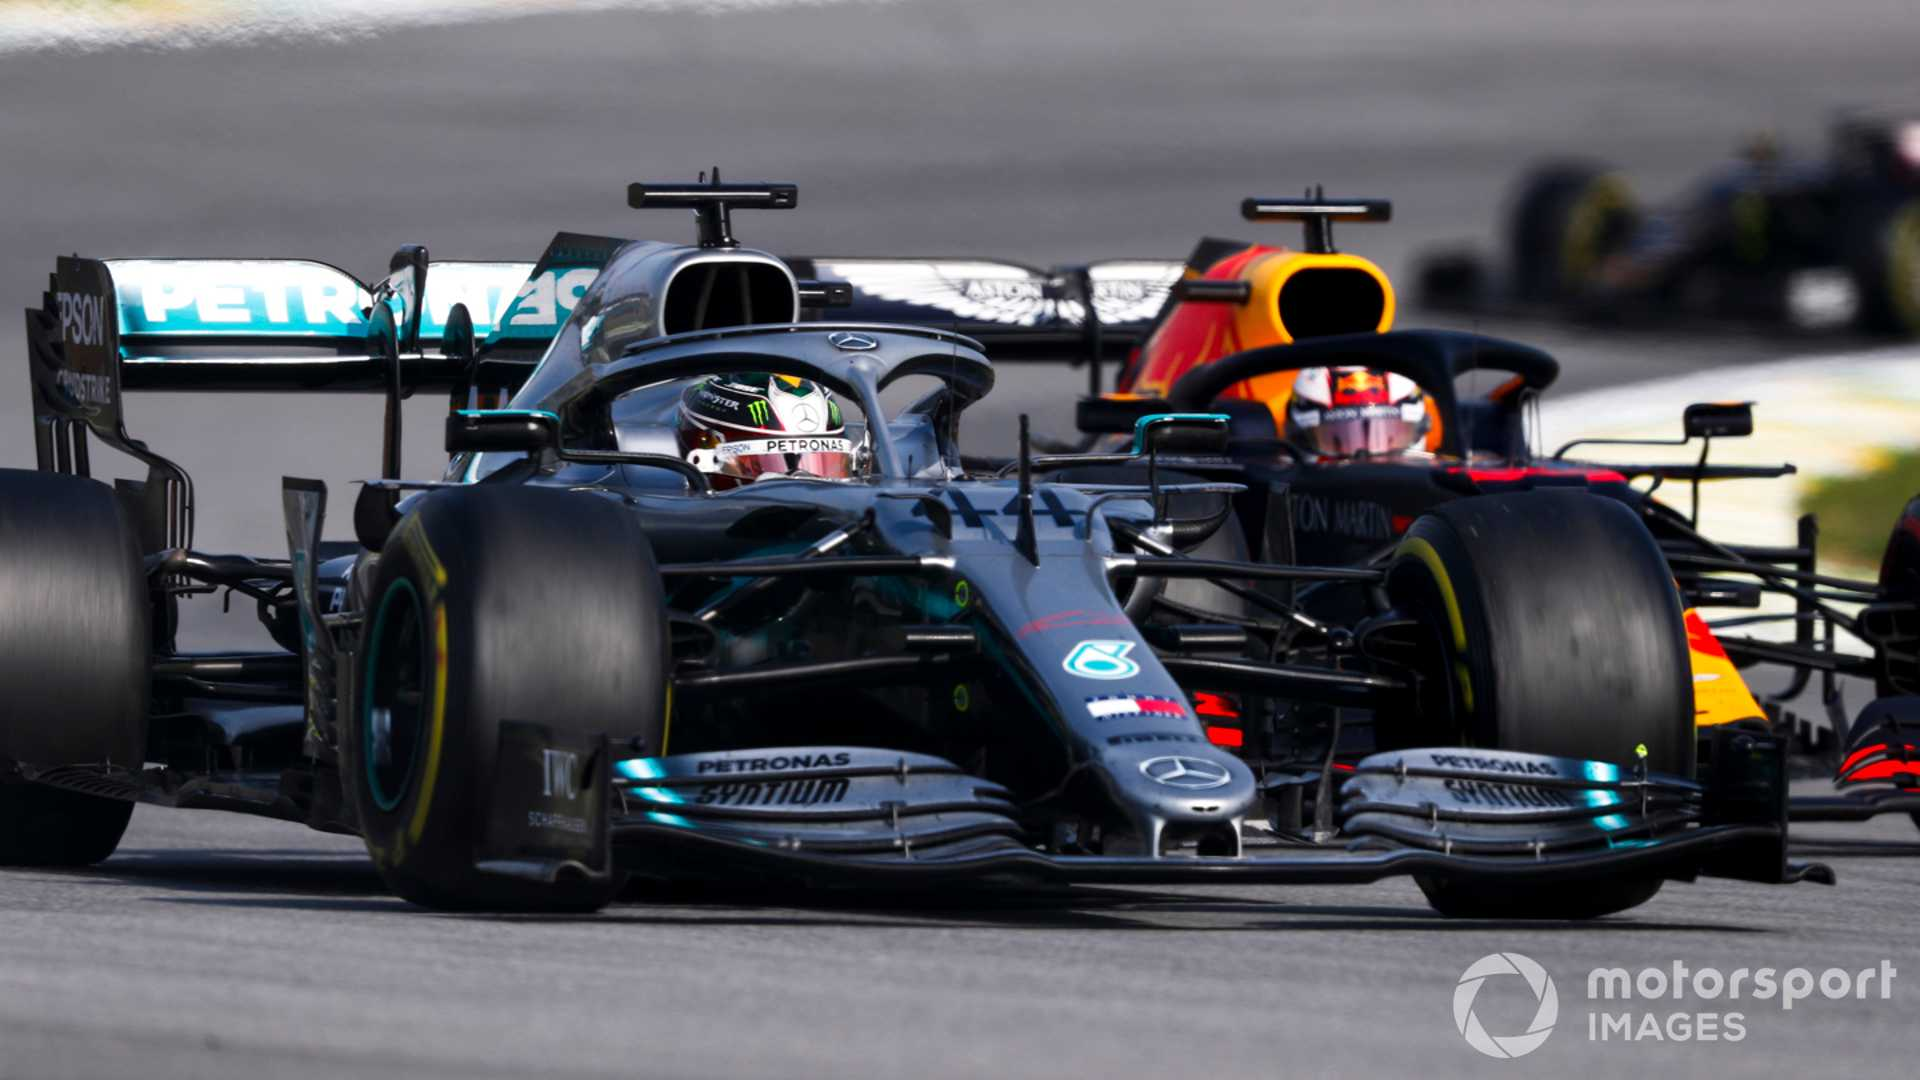 Mercedes explains Hamilton hybrid derate, causing radio outburst